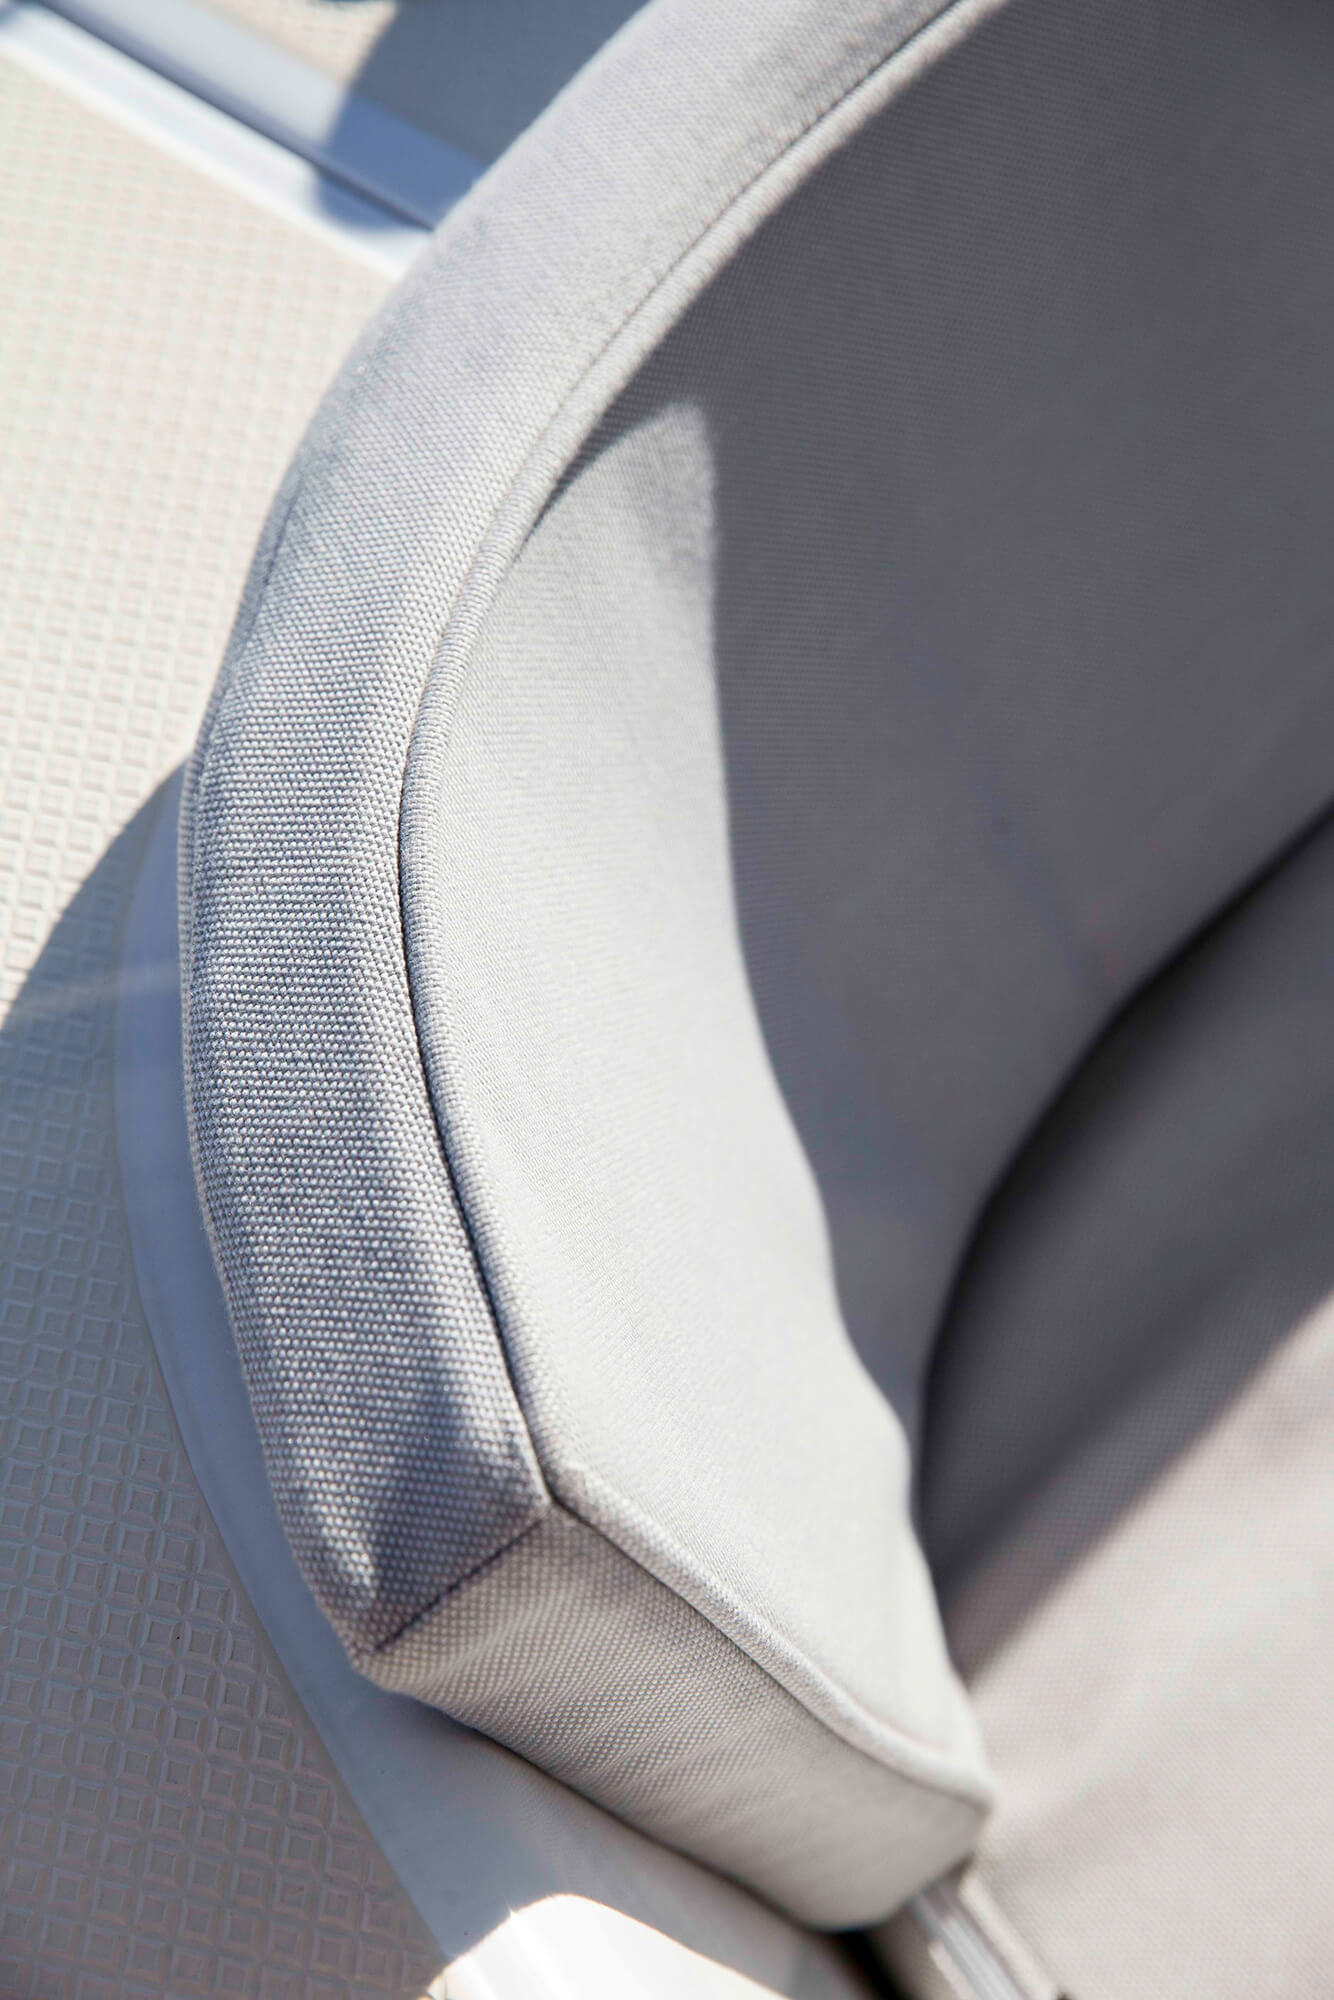 Detail shot of a boat seat cushion and back made using beige Sunbrella upholstery fabric